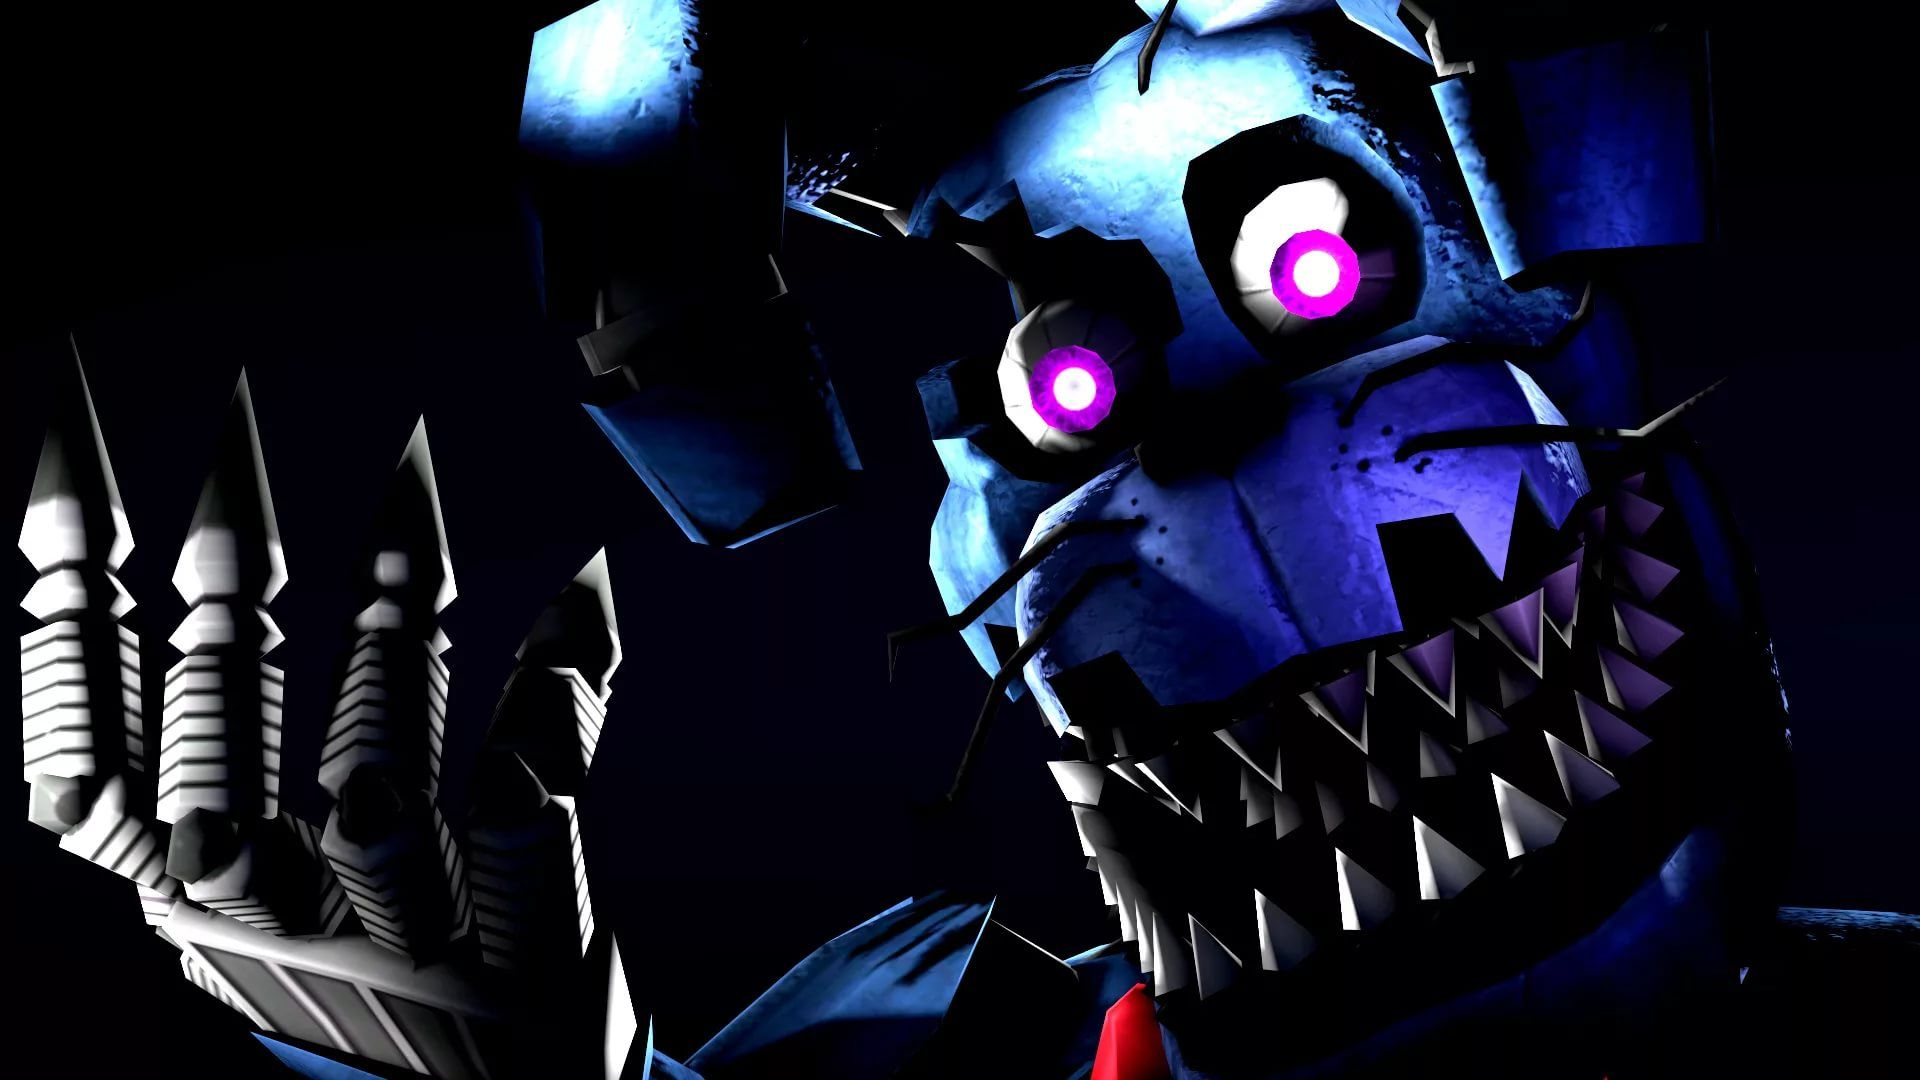 FNAF Bonnie desktop wallpaper download